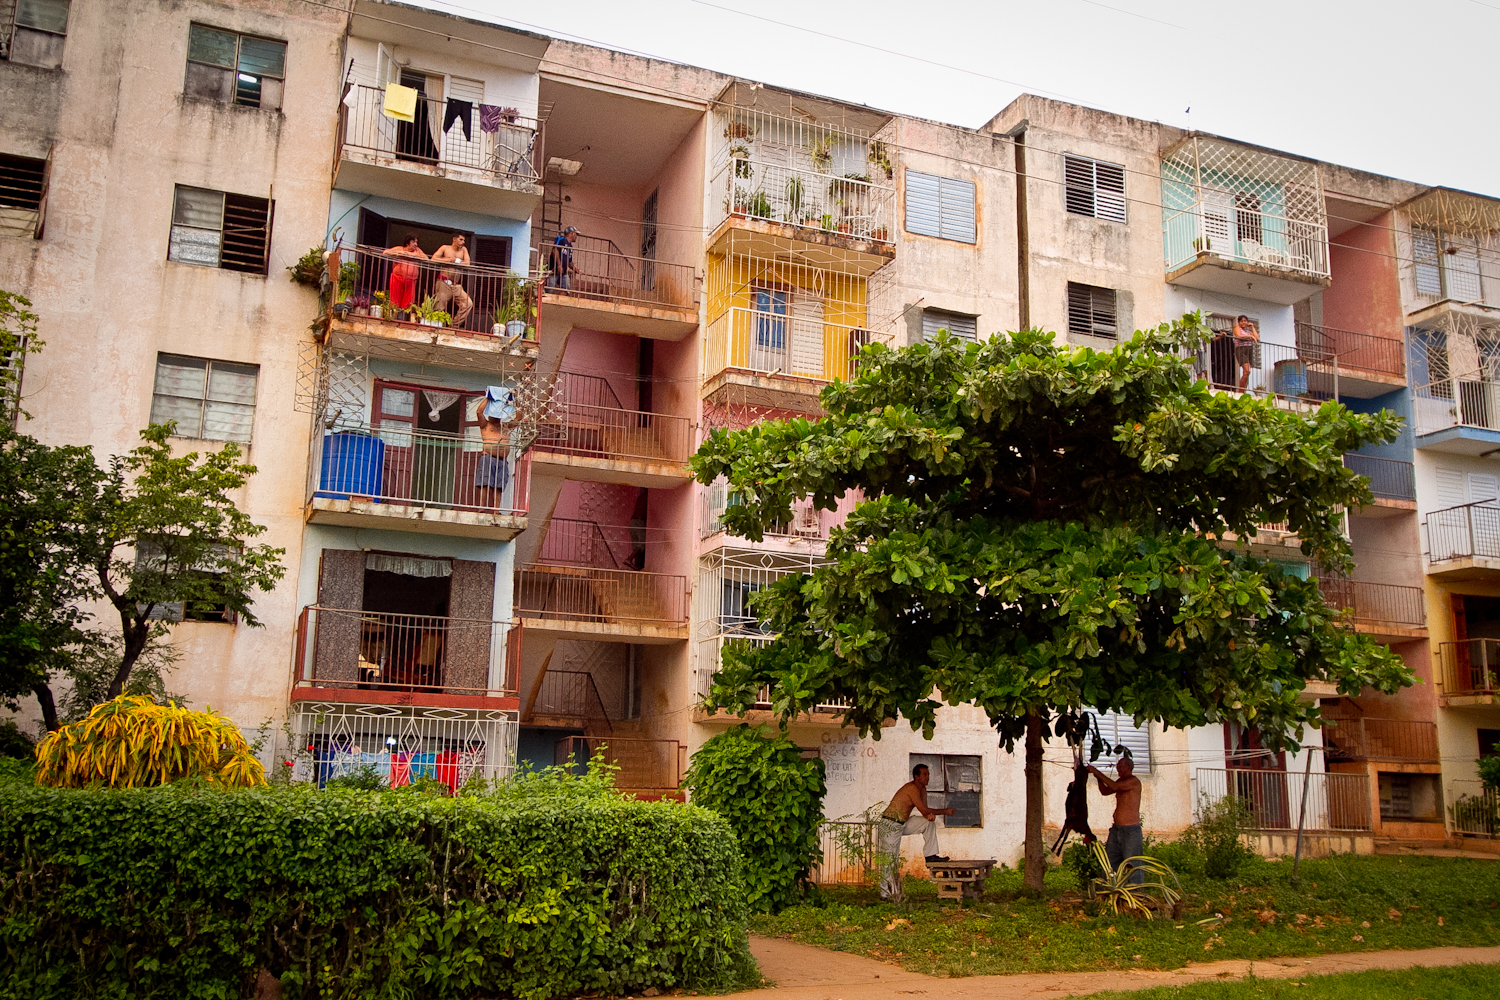 At first glance, just a typical apartment building in Cuba. Look more closely at the men under the tree. They have a freshly butchered goat hanging, while they skin it, right outside the apartment!